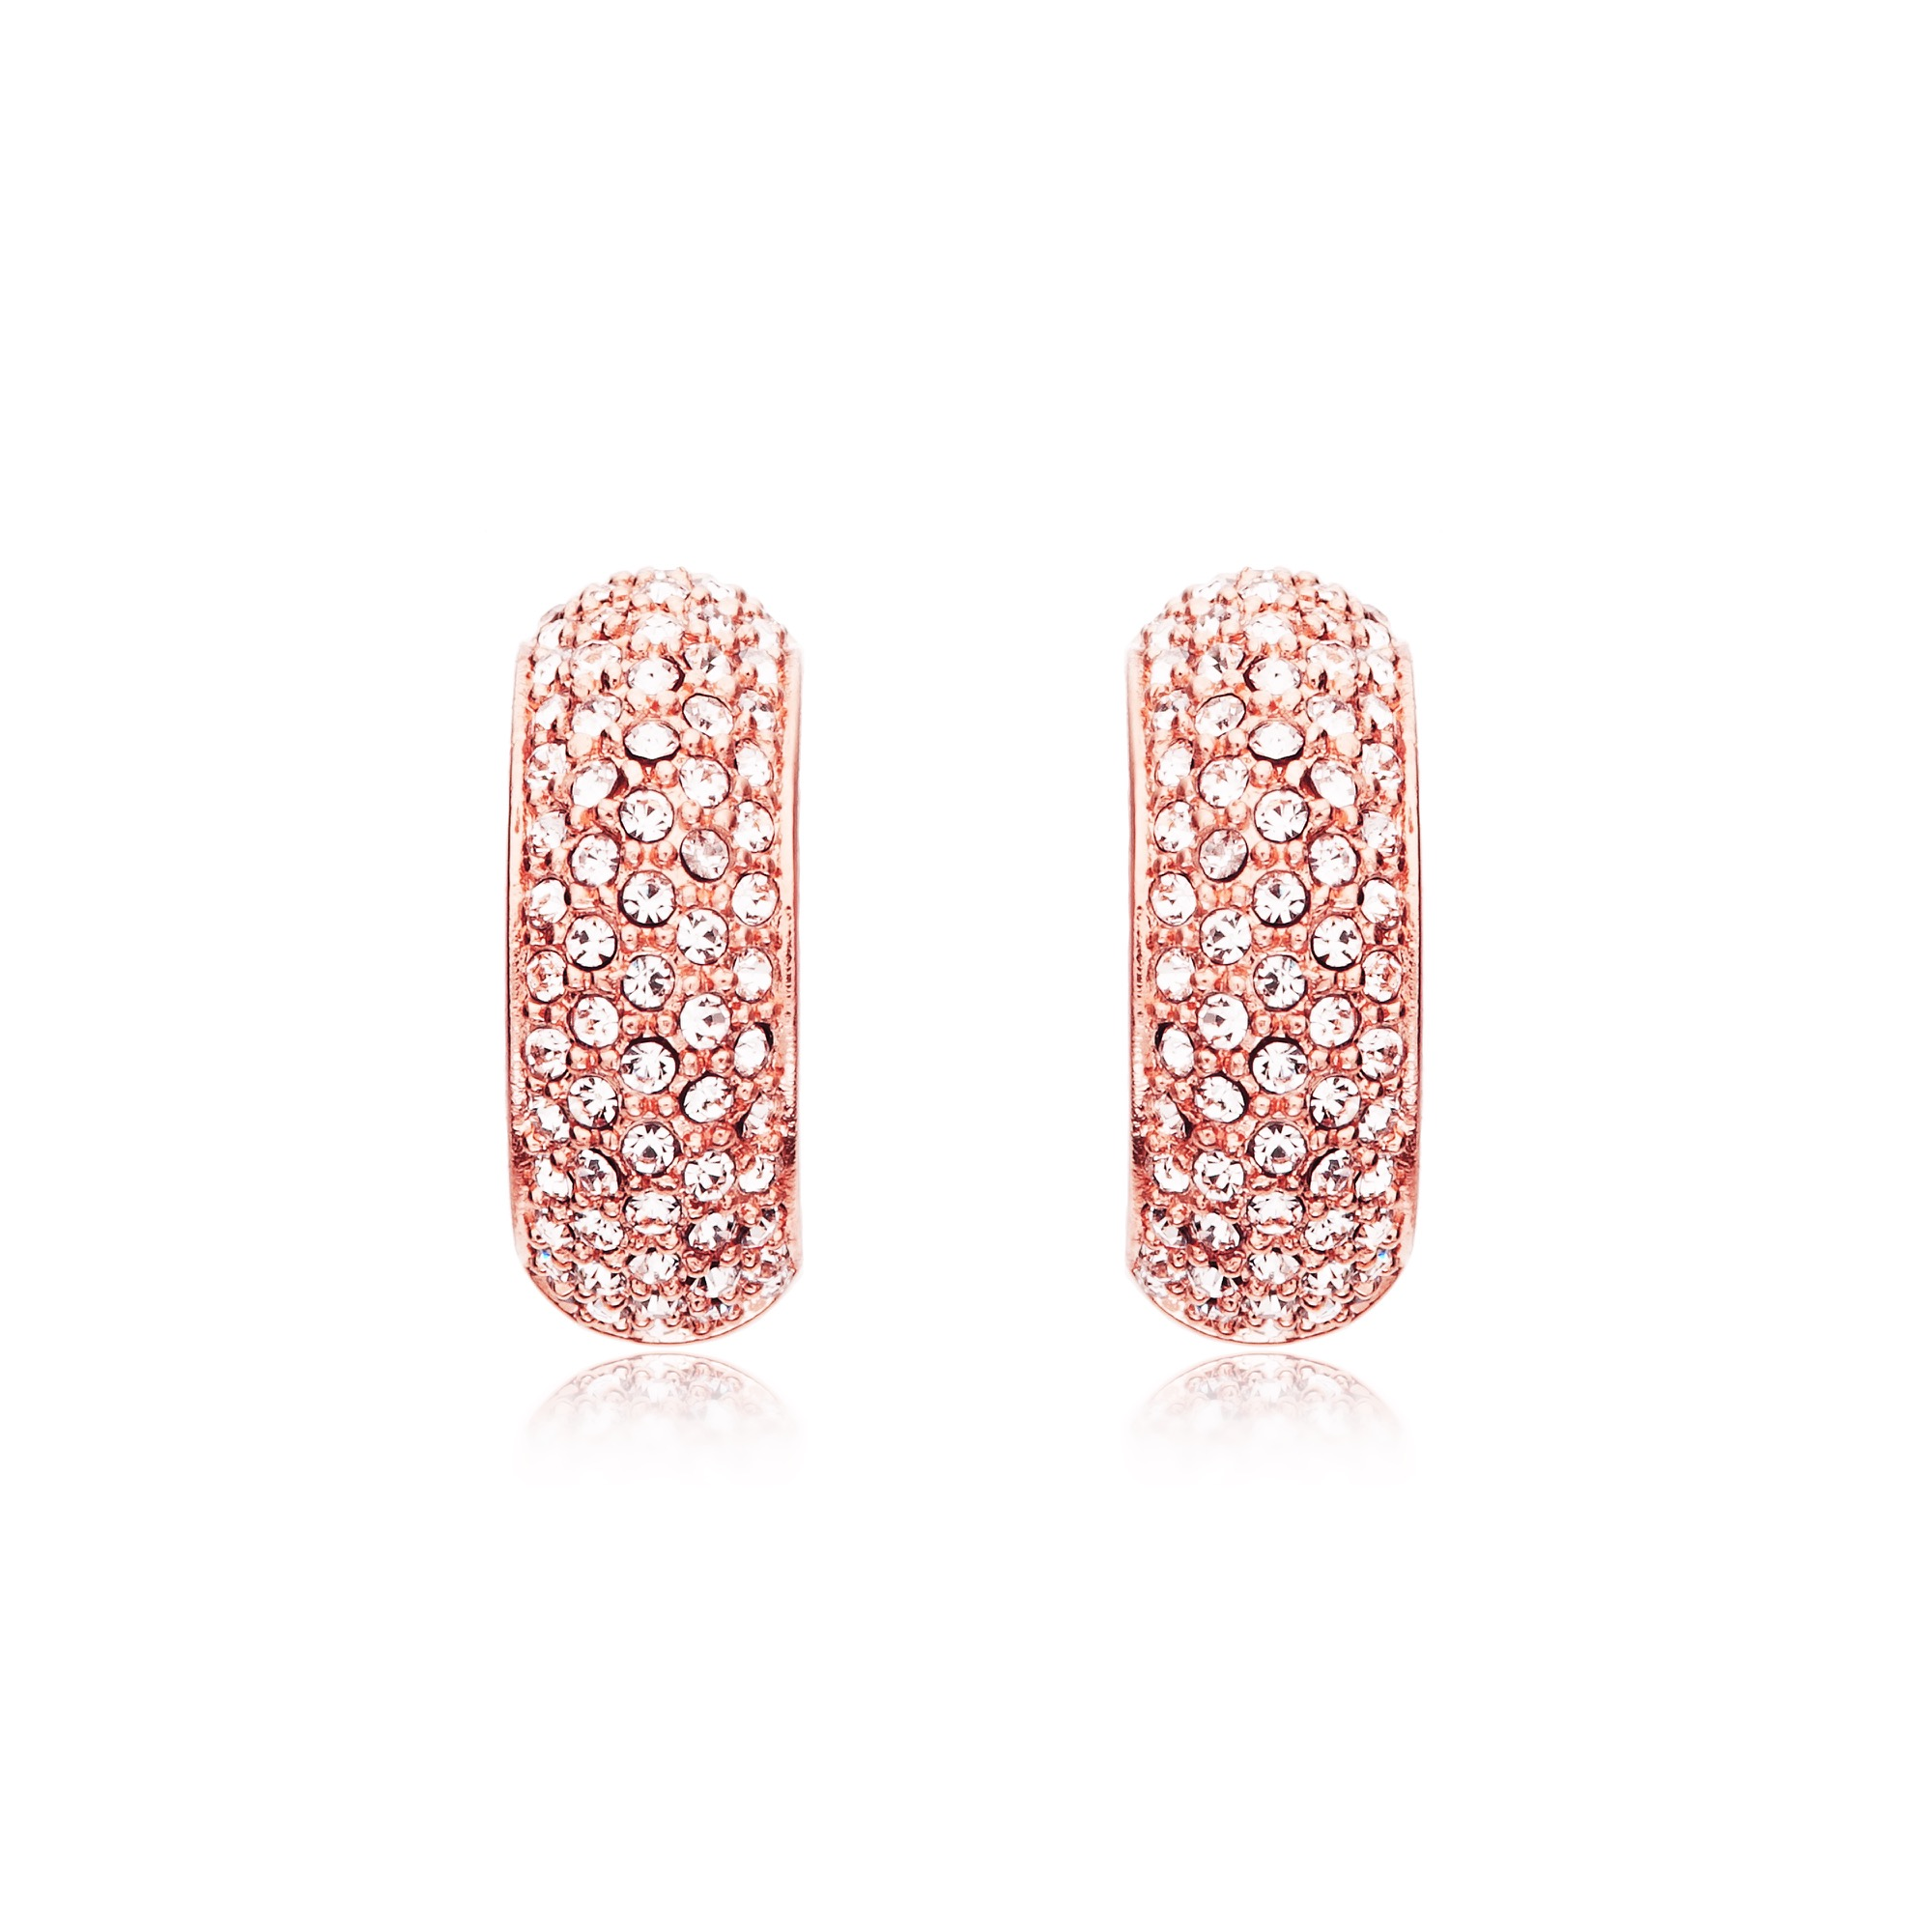 MYJS Stone Palace Swarovski Crystals Pave Hoop Earrings Rose Gold ...